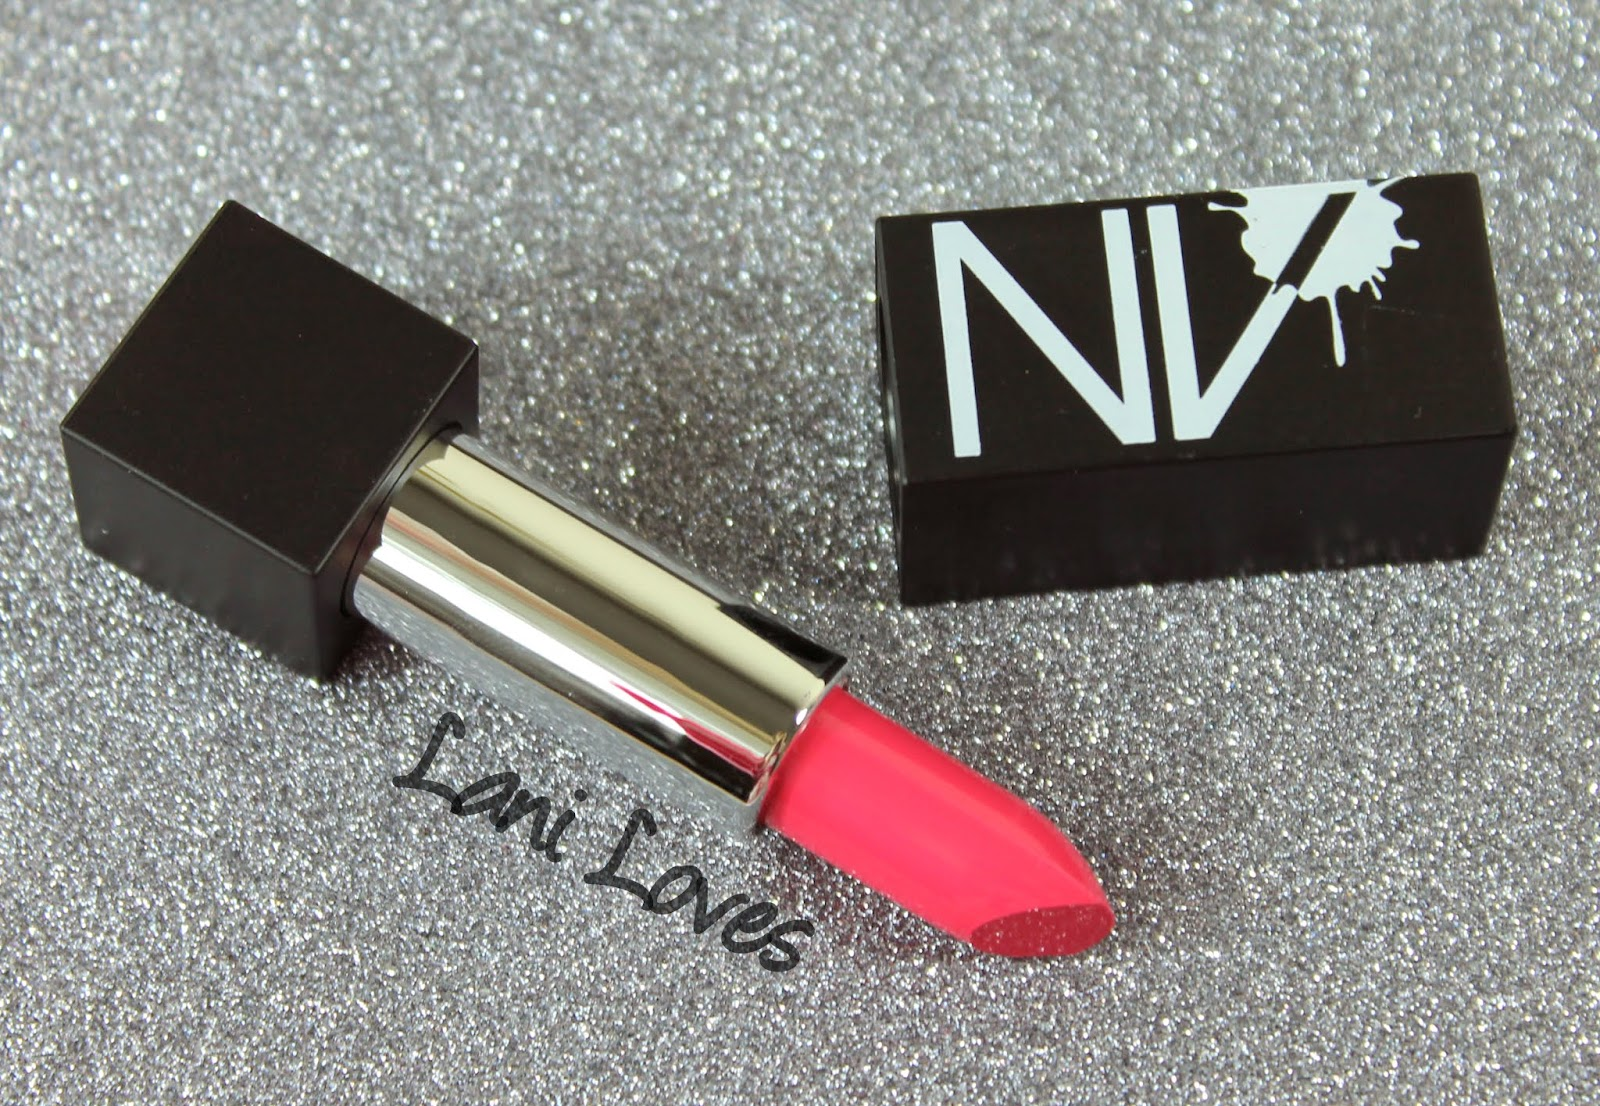 NV Lipstick - Sorbet preview